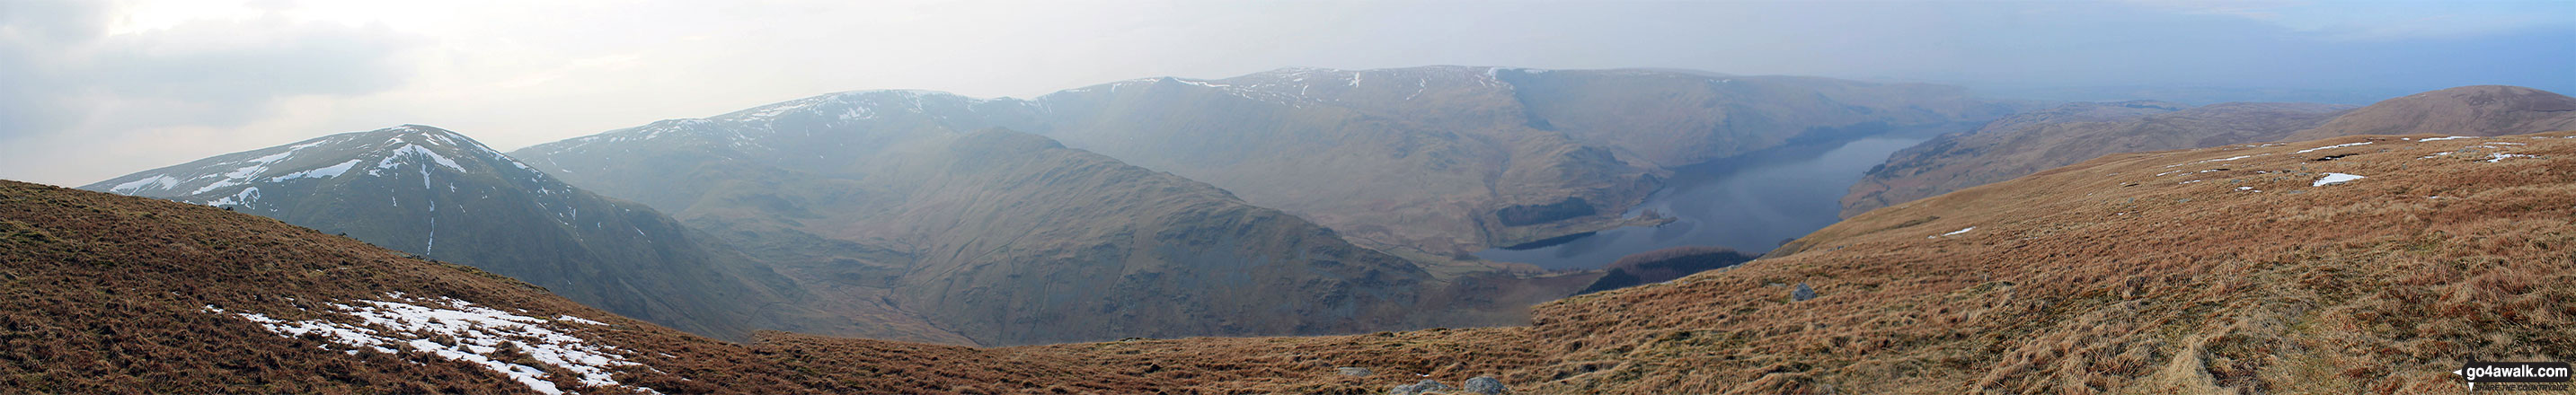 Harter Fell (Mardale) (left), High Street, Kidsty Pike, High Raise (Mardale), Haweswater Reservoir and Selside Pike (far right) from Branstree (Artlecrag Pike)